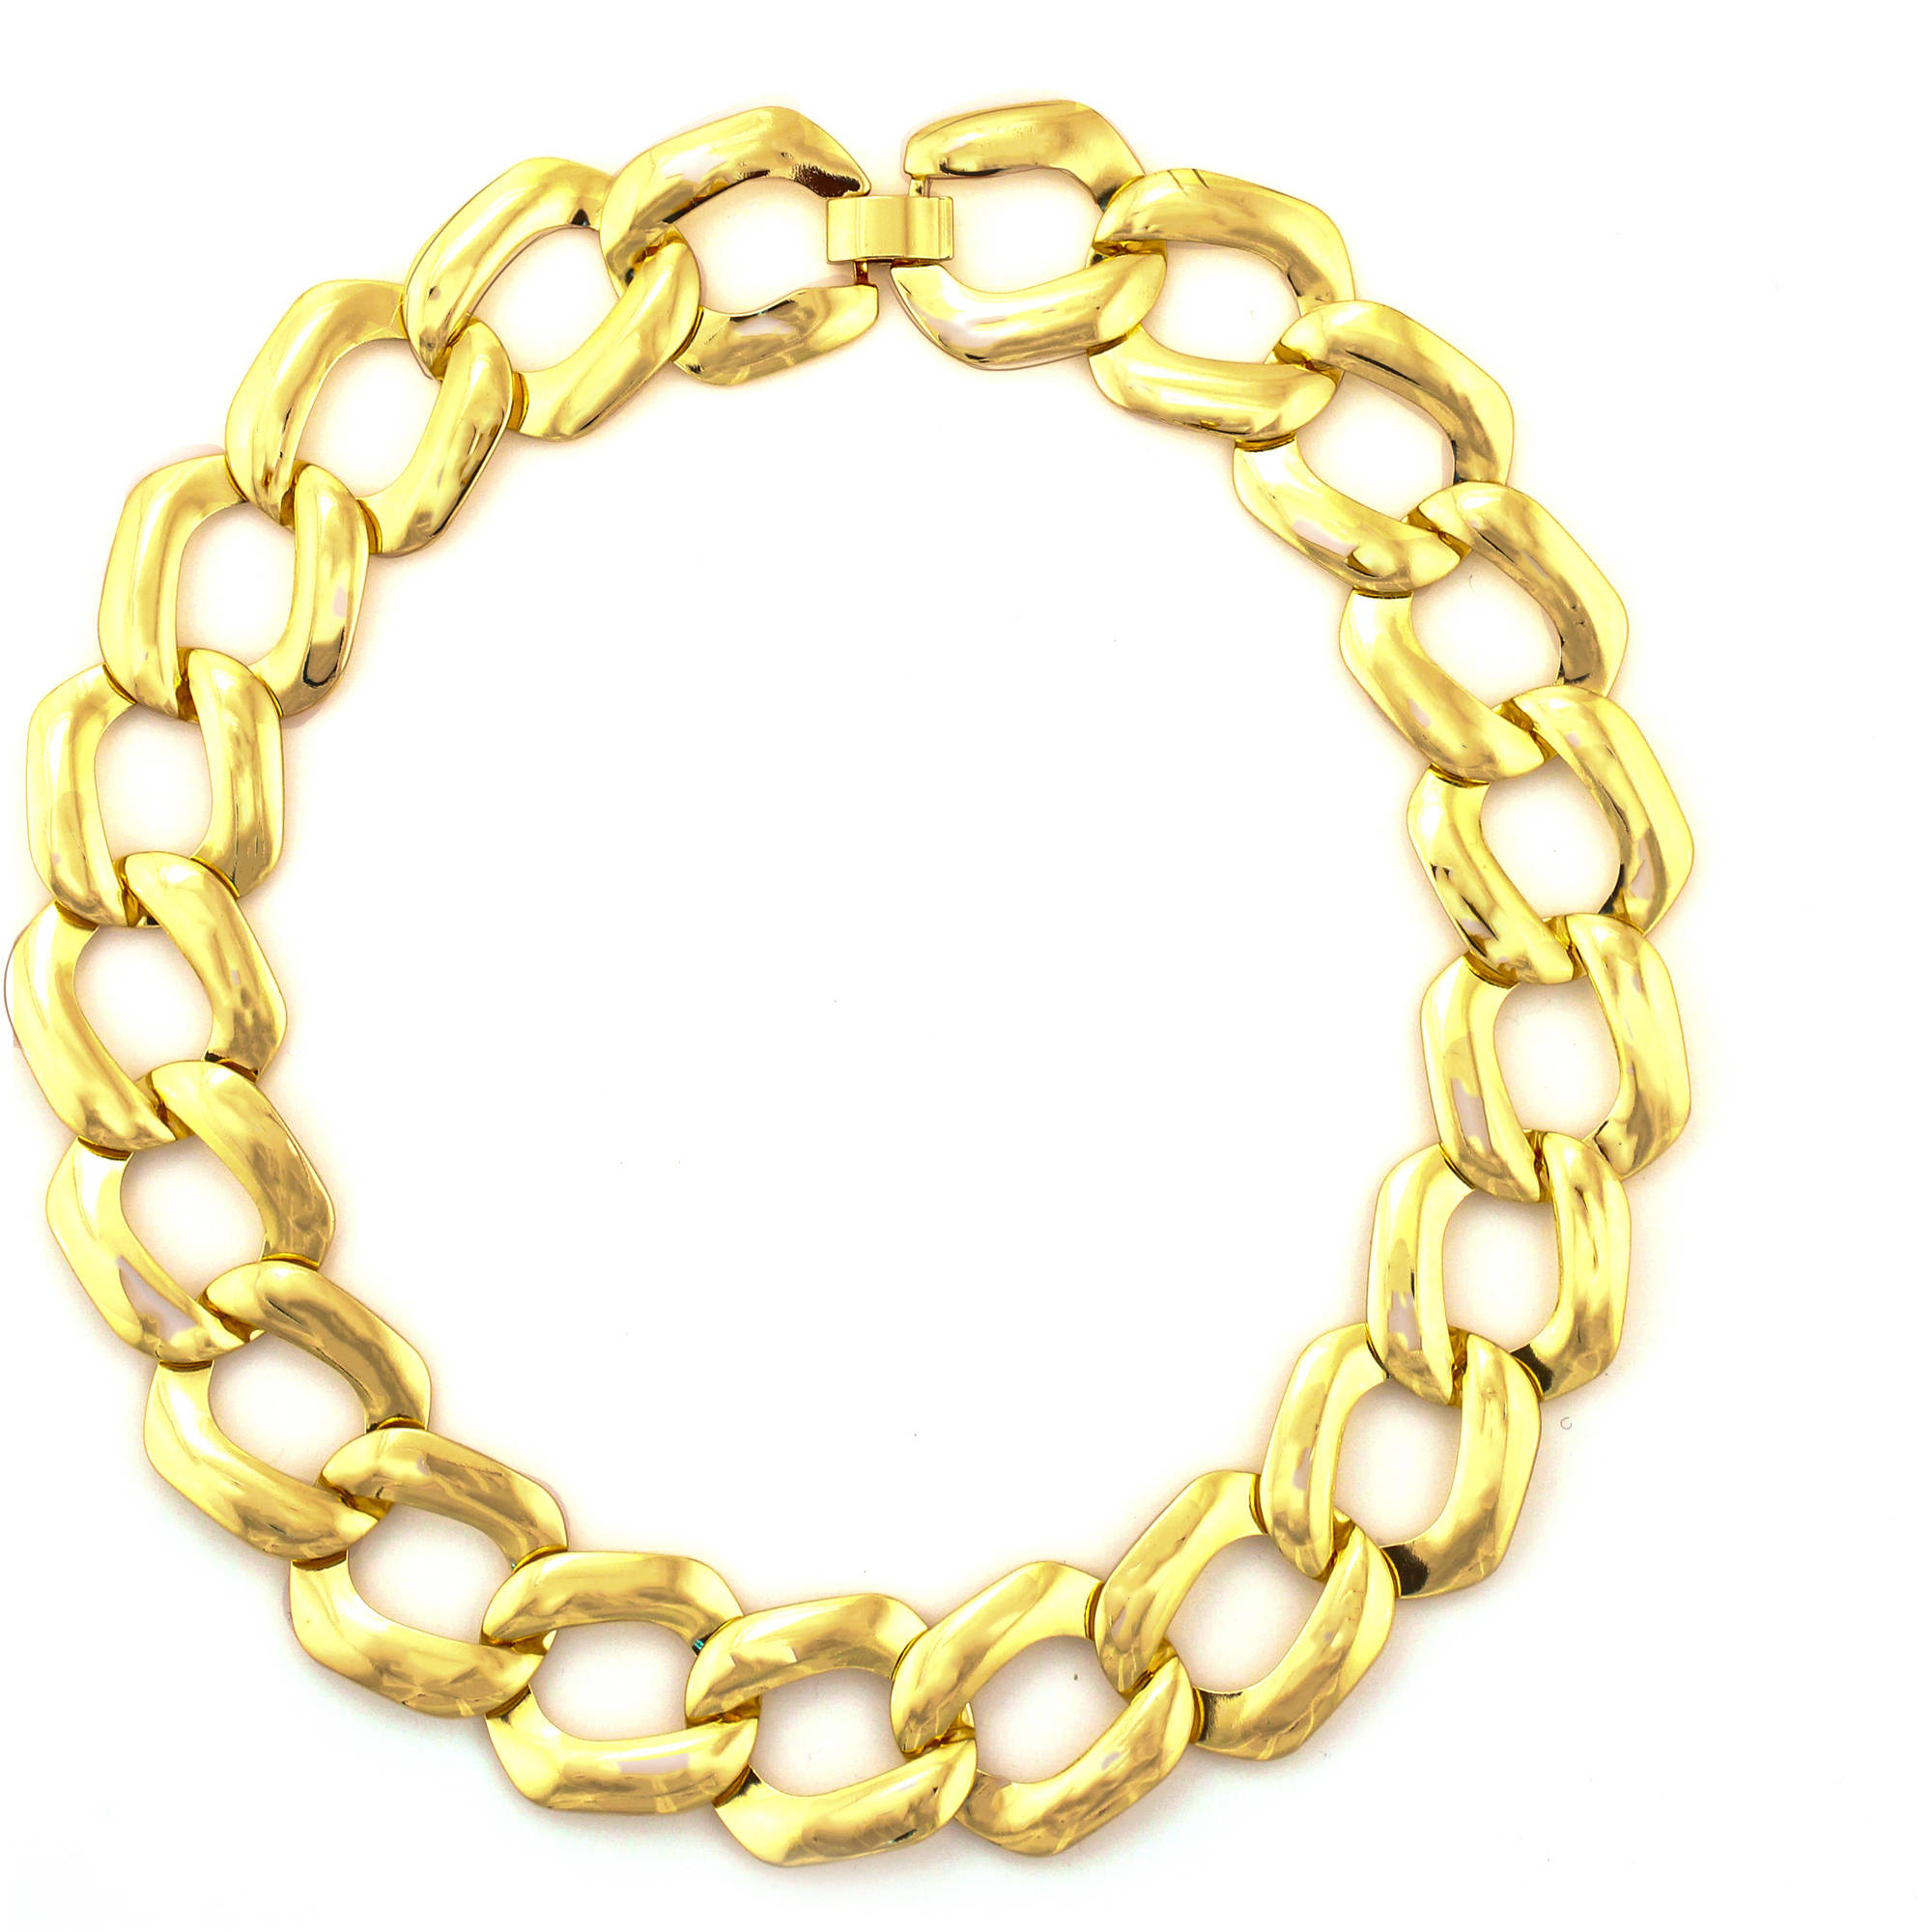 Tazza Shiny Gold-Tone Thick Flat Chain Statement Necklace